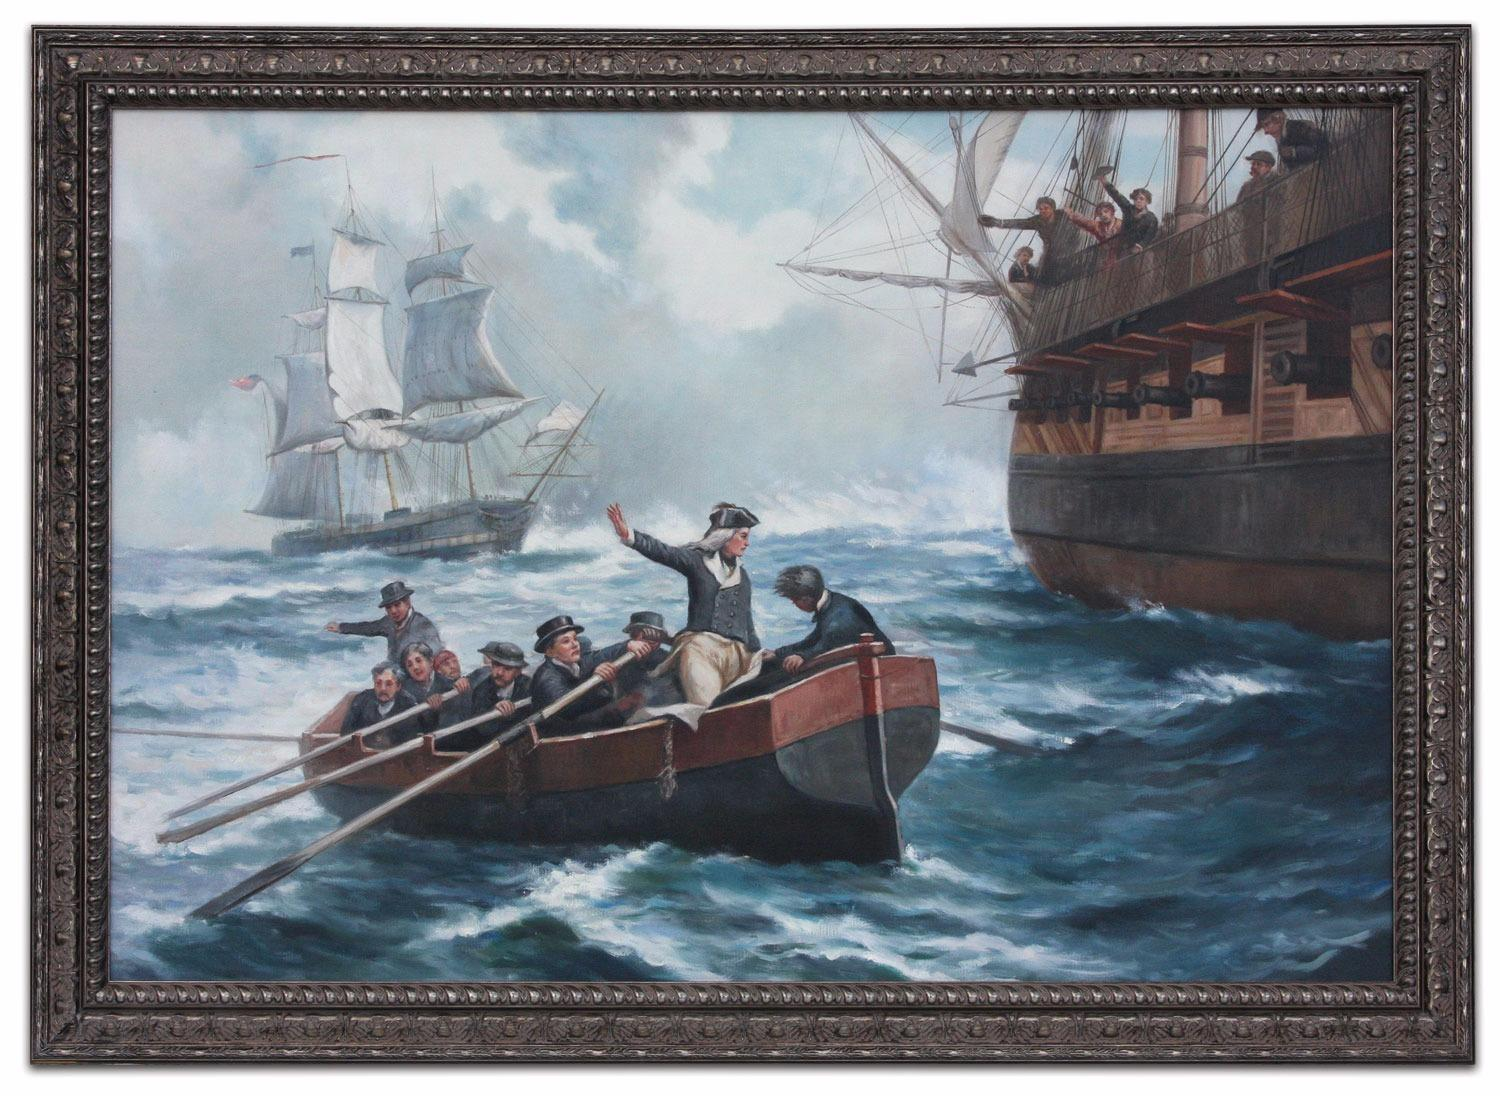 Oil painting after 'Nelson's First Prize' by Bernard Finnigan Gribble